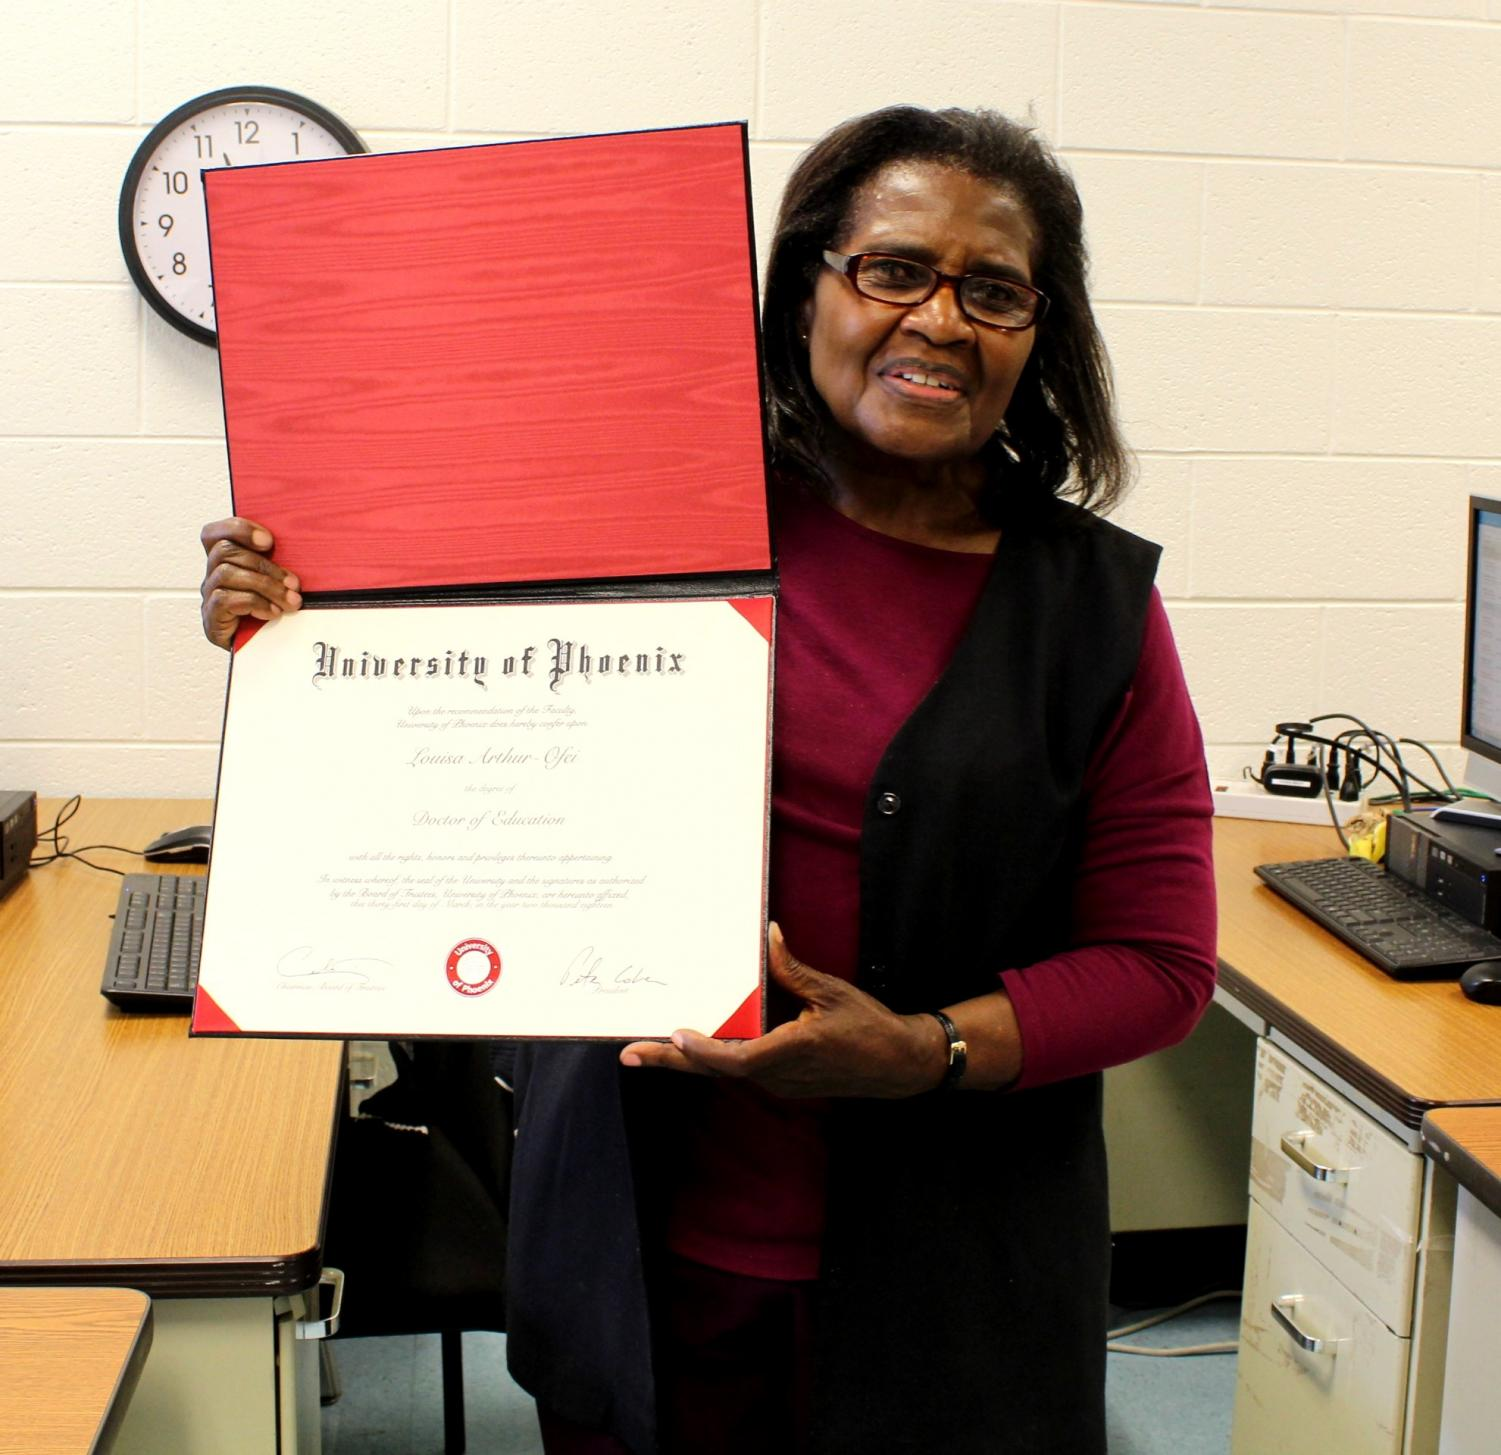 Paraeducator Louisa Arthur holds up her Ph.D. certificate from the University of Pheonix. Arthur earned her doctorate in education after seven years of online classes. Photo by Annabel Redisch.